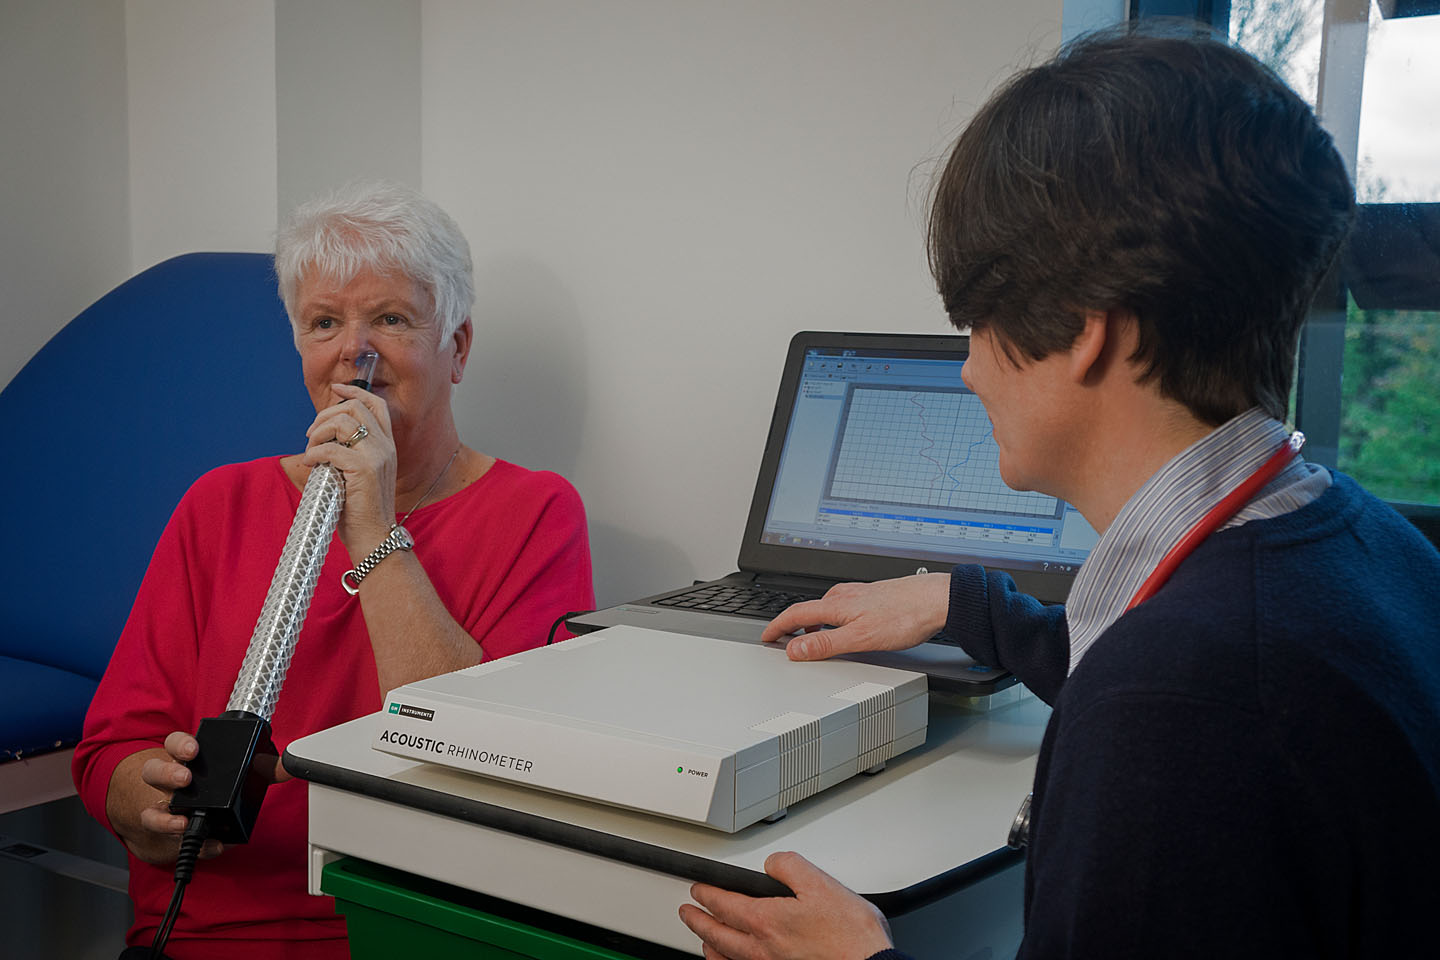 A1 Acoustic Rhinometer in use